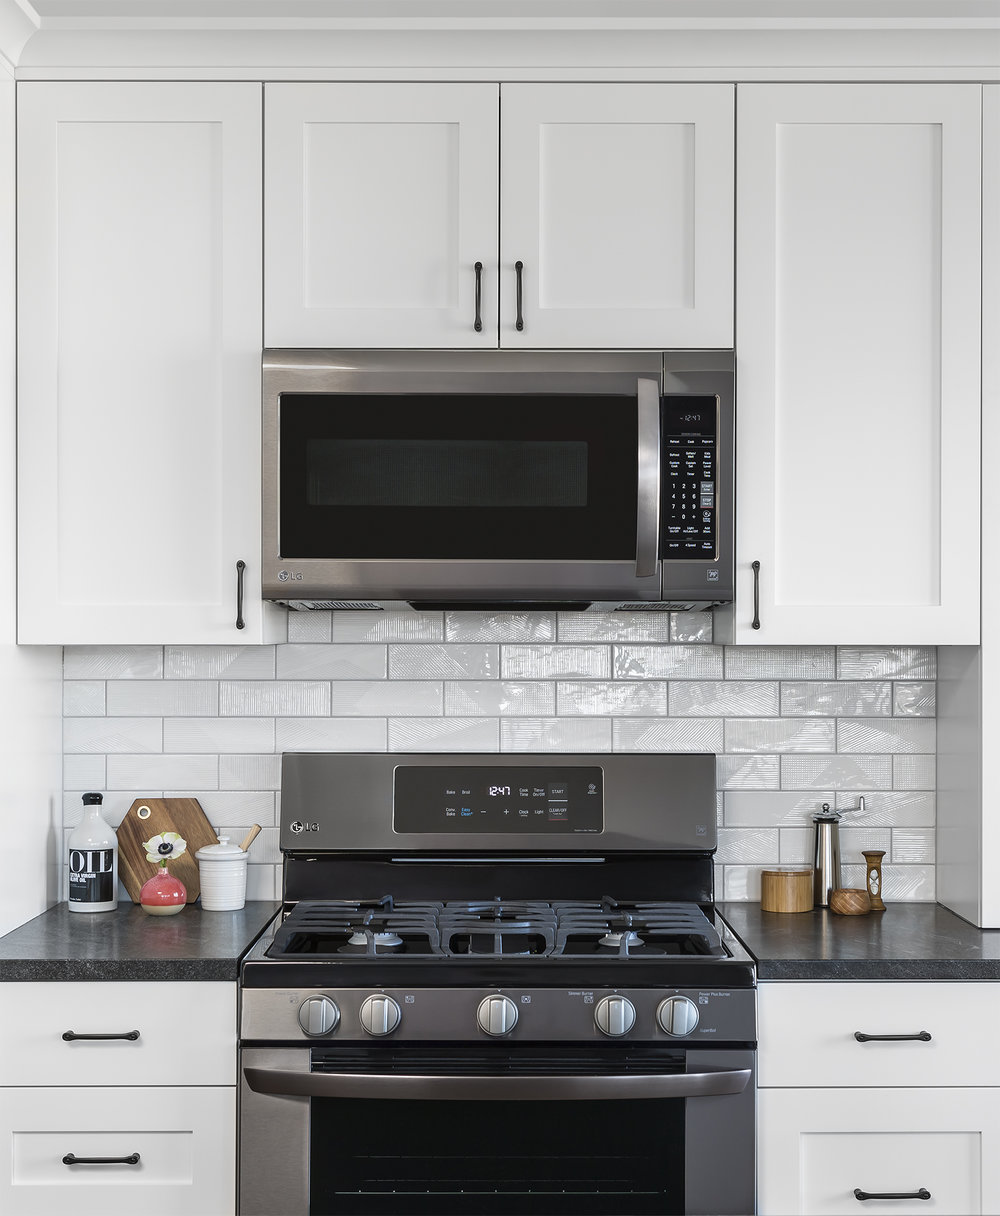 Clean-lined cabinetry and a geometric backsplash tile suit the modern aesthetic of the homeowners.